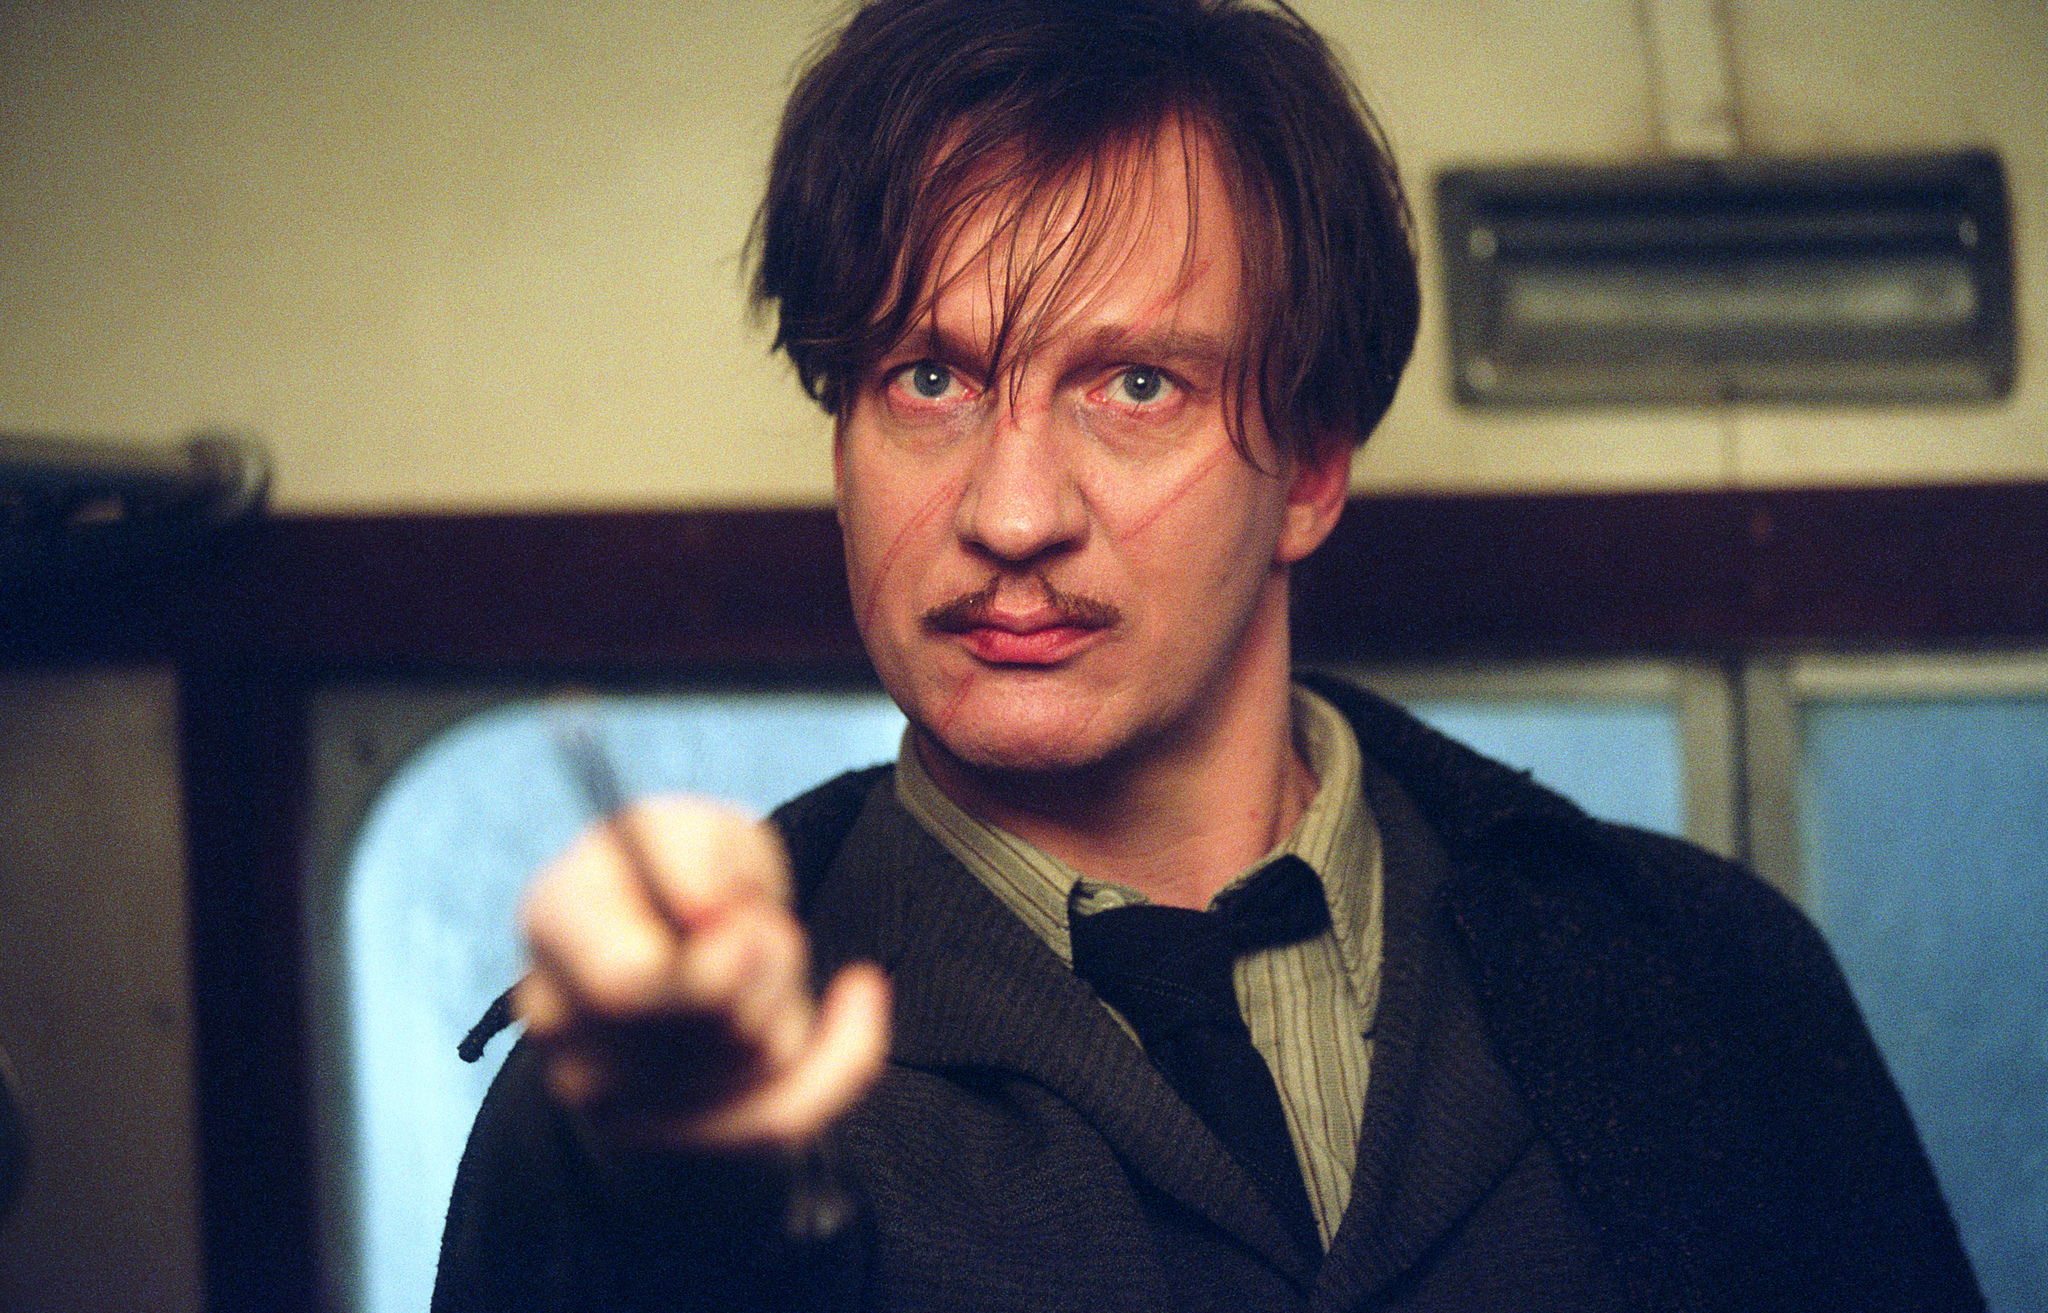 scary good our favorite werewolves  david thewlis in harry potter and the prisoner of azkaban 2004